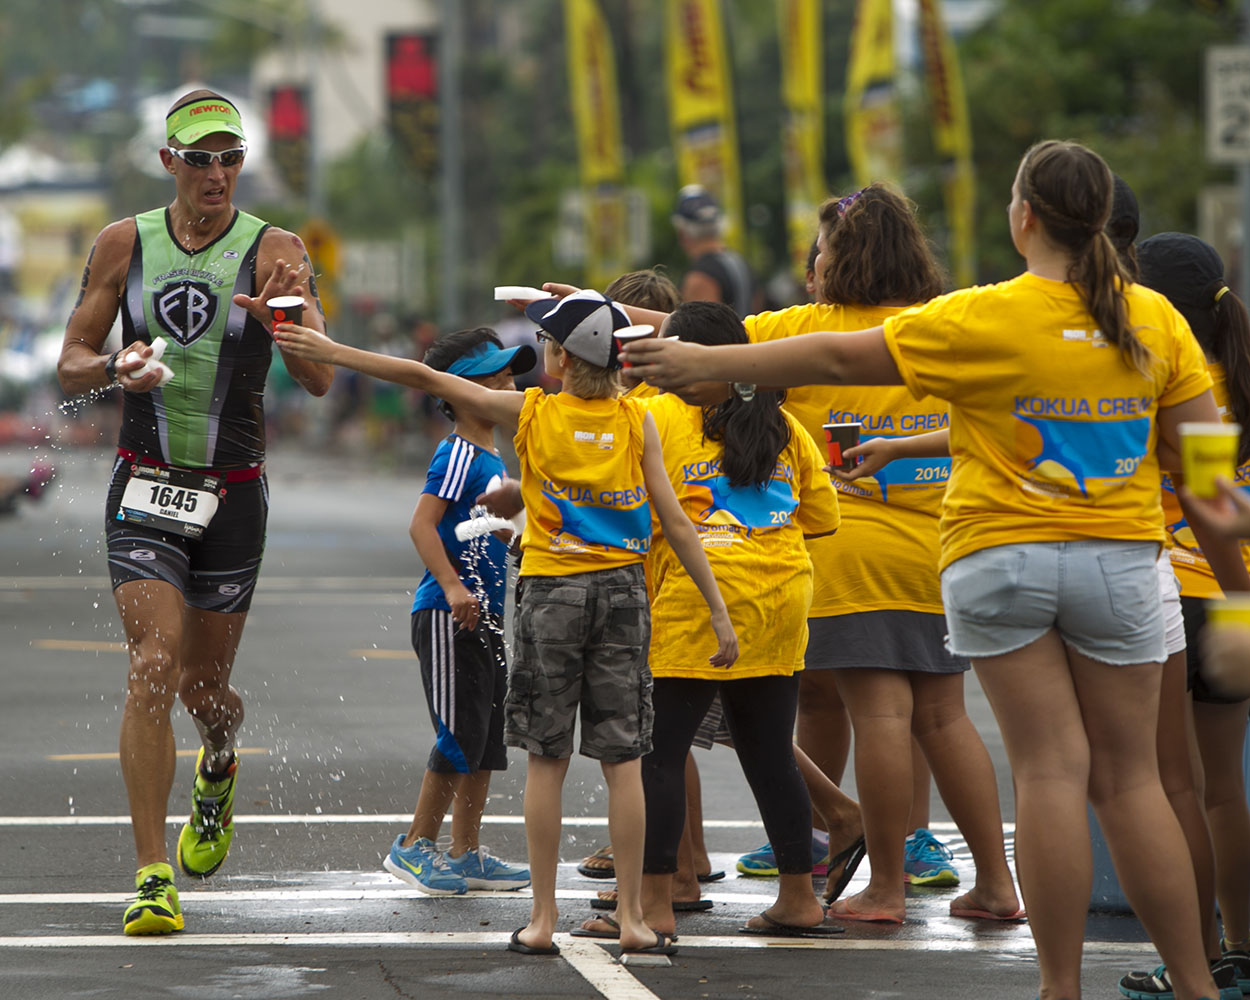 Daniel Stubleski grabs water from an aid station during the marathon portion of the 2014 IRONMAN World Championship.